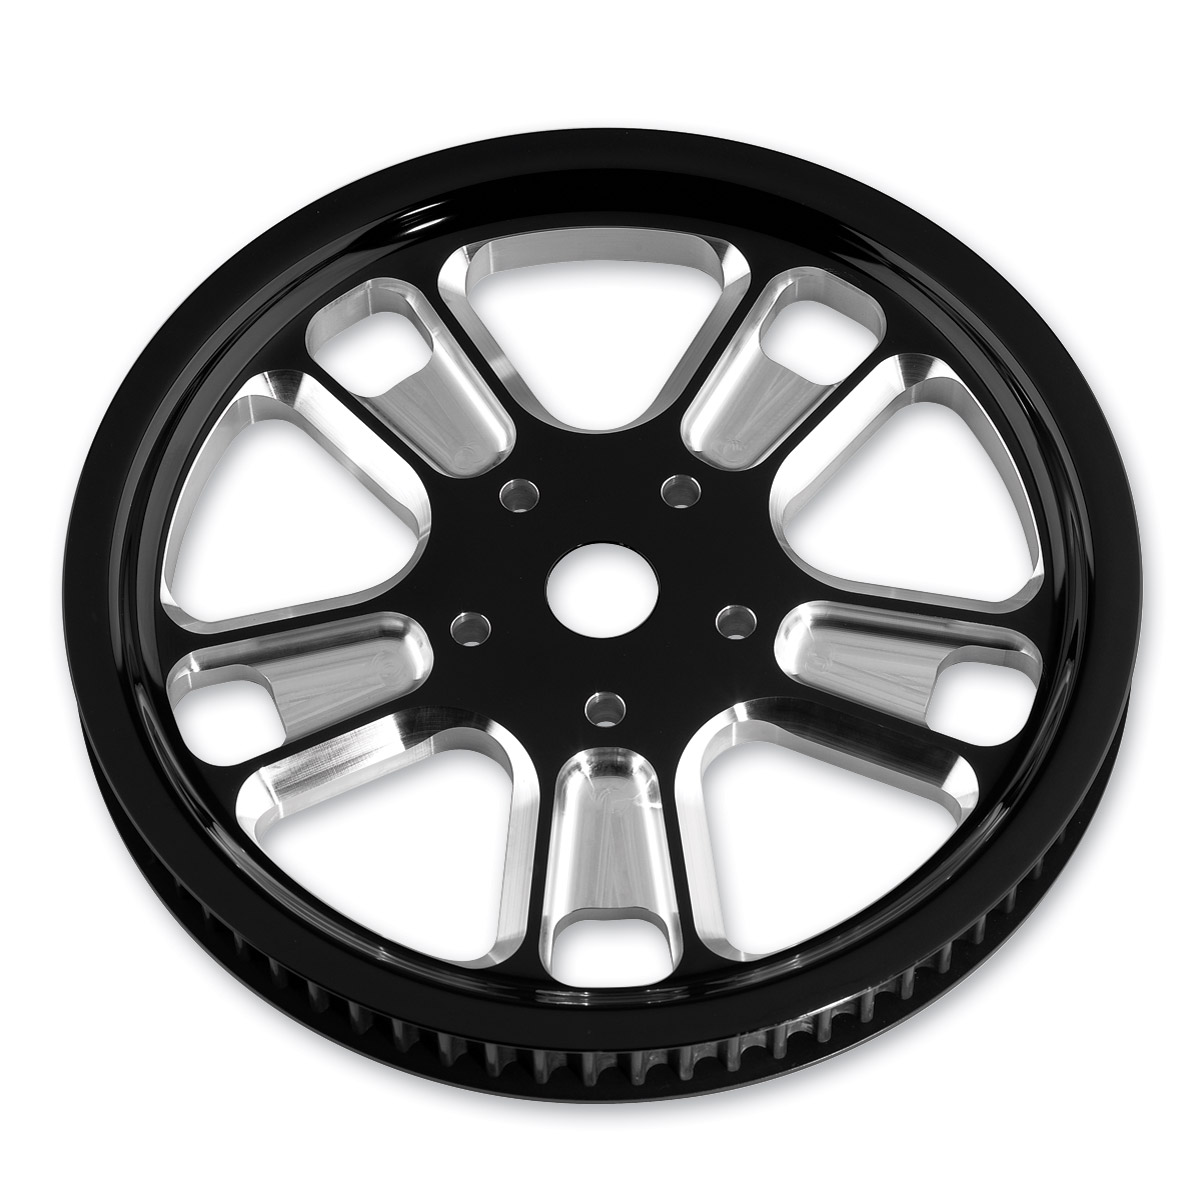 Roland Sands Design Judge Contrast Cut 66T Forged Aluminum Pulley